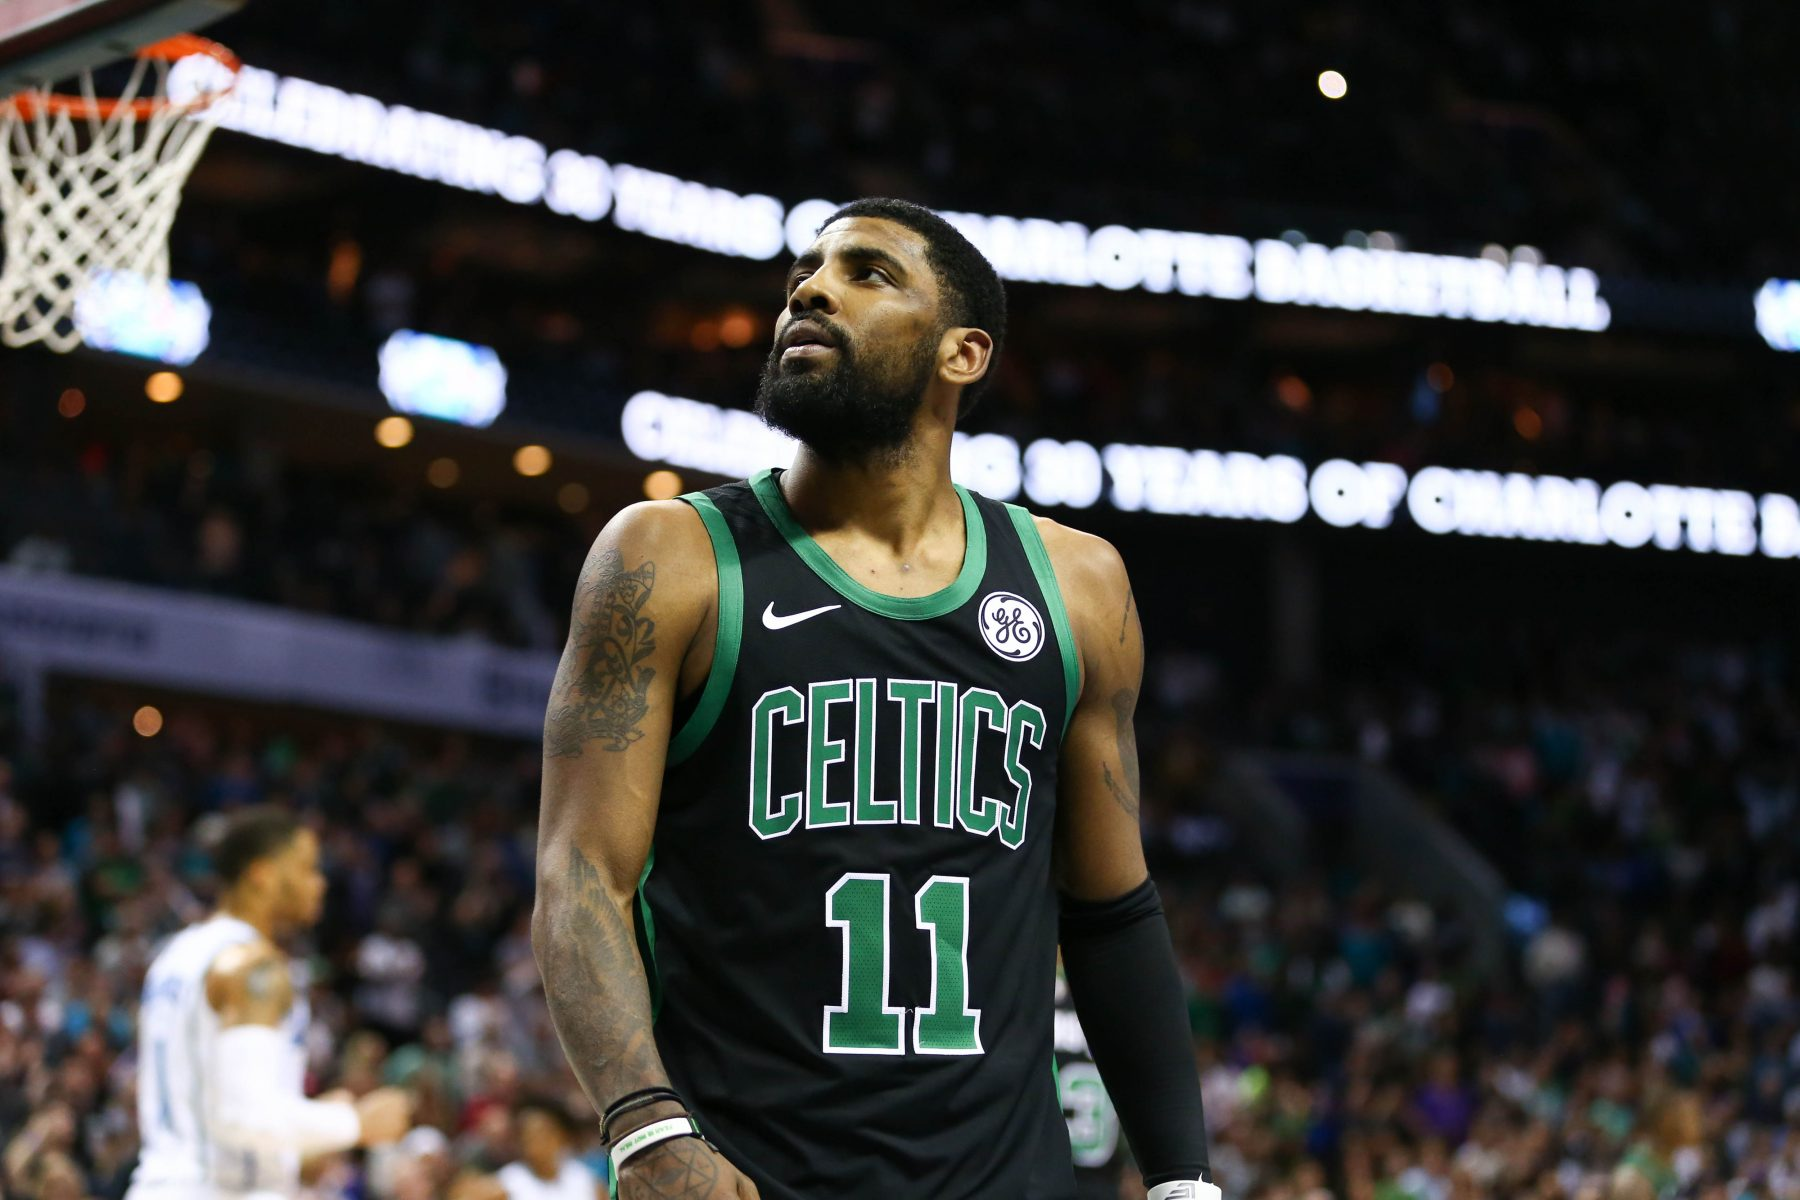 Report: Kyrie Irving to Miss Tuesday Night's Game vs. Cavs ...Kyrie Irving